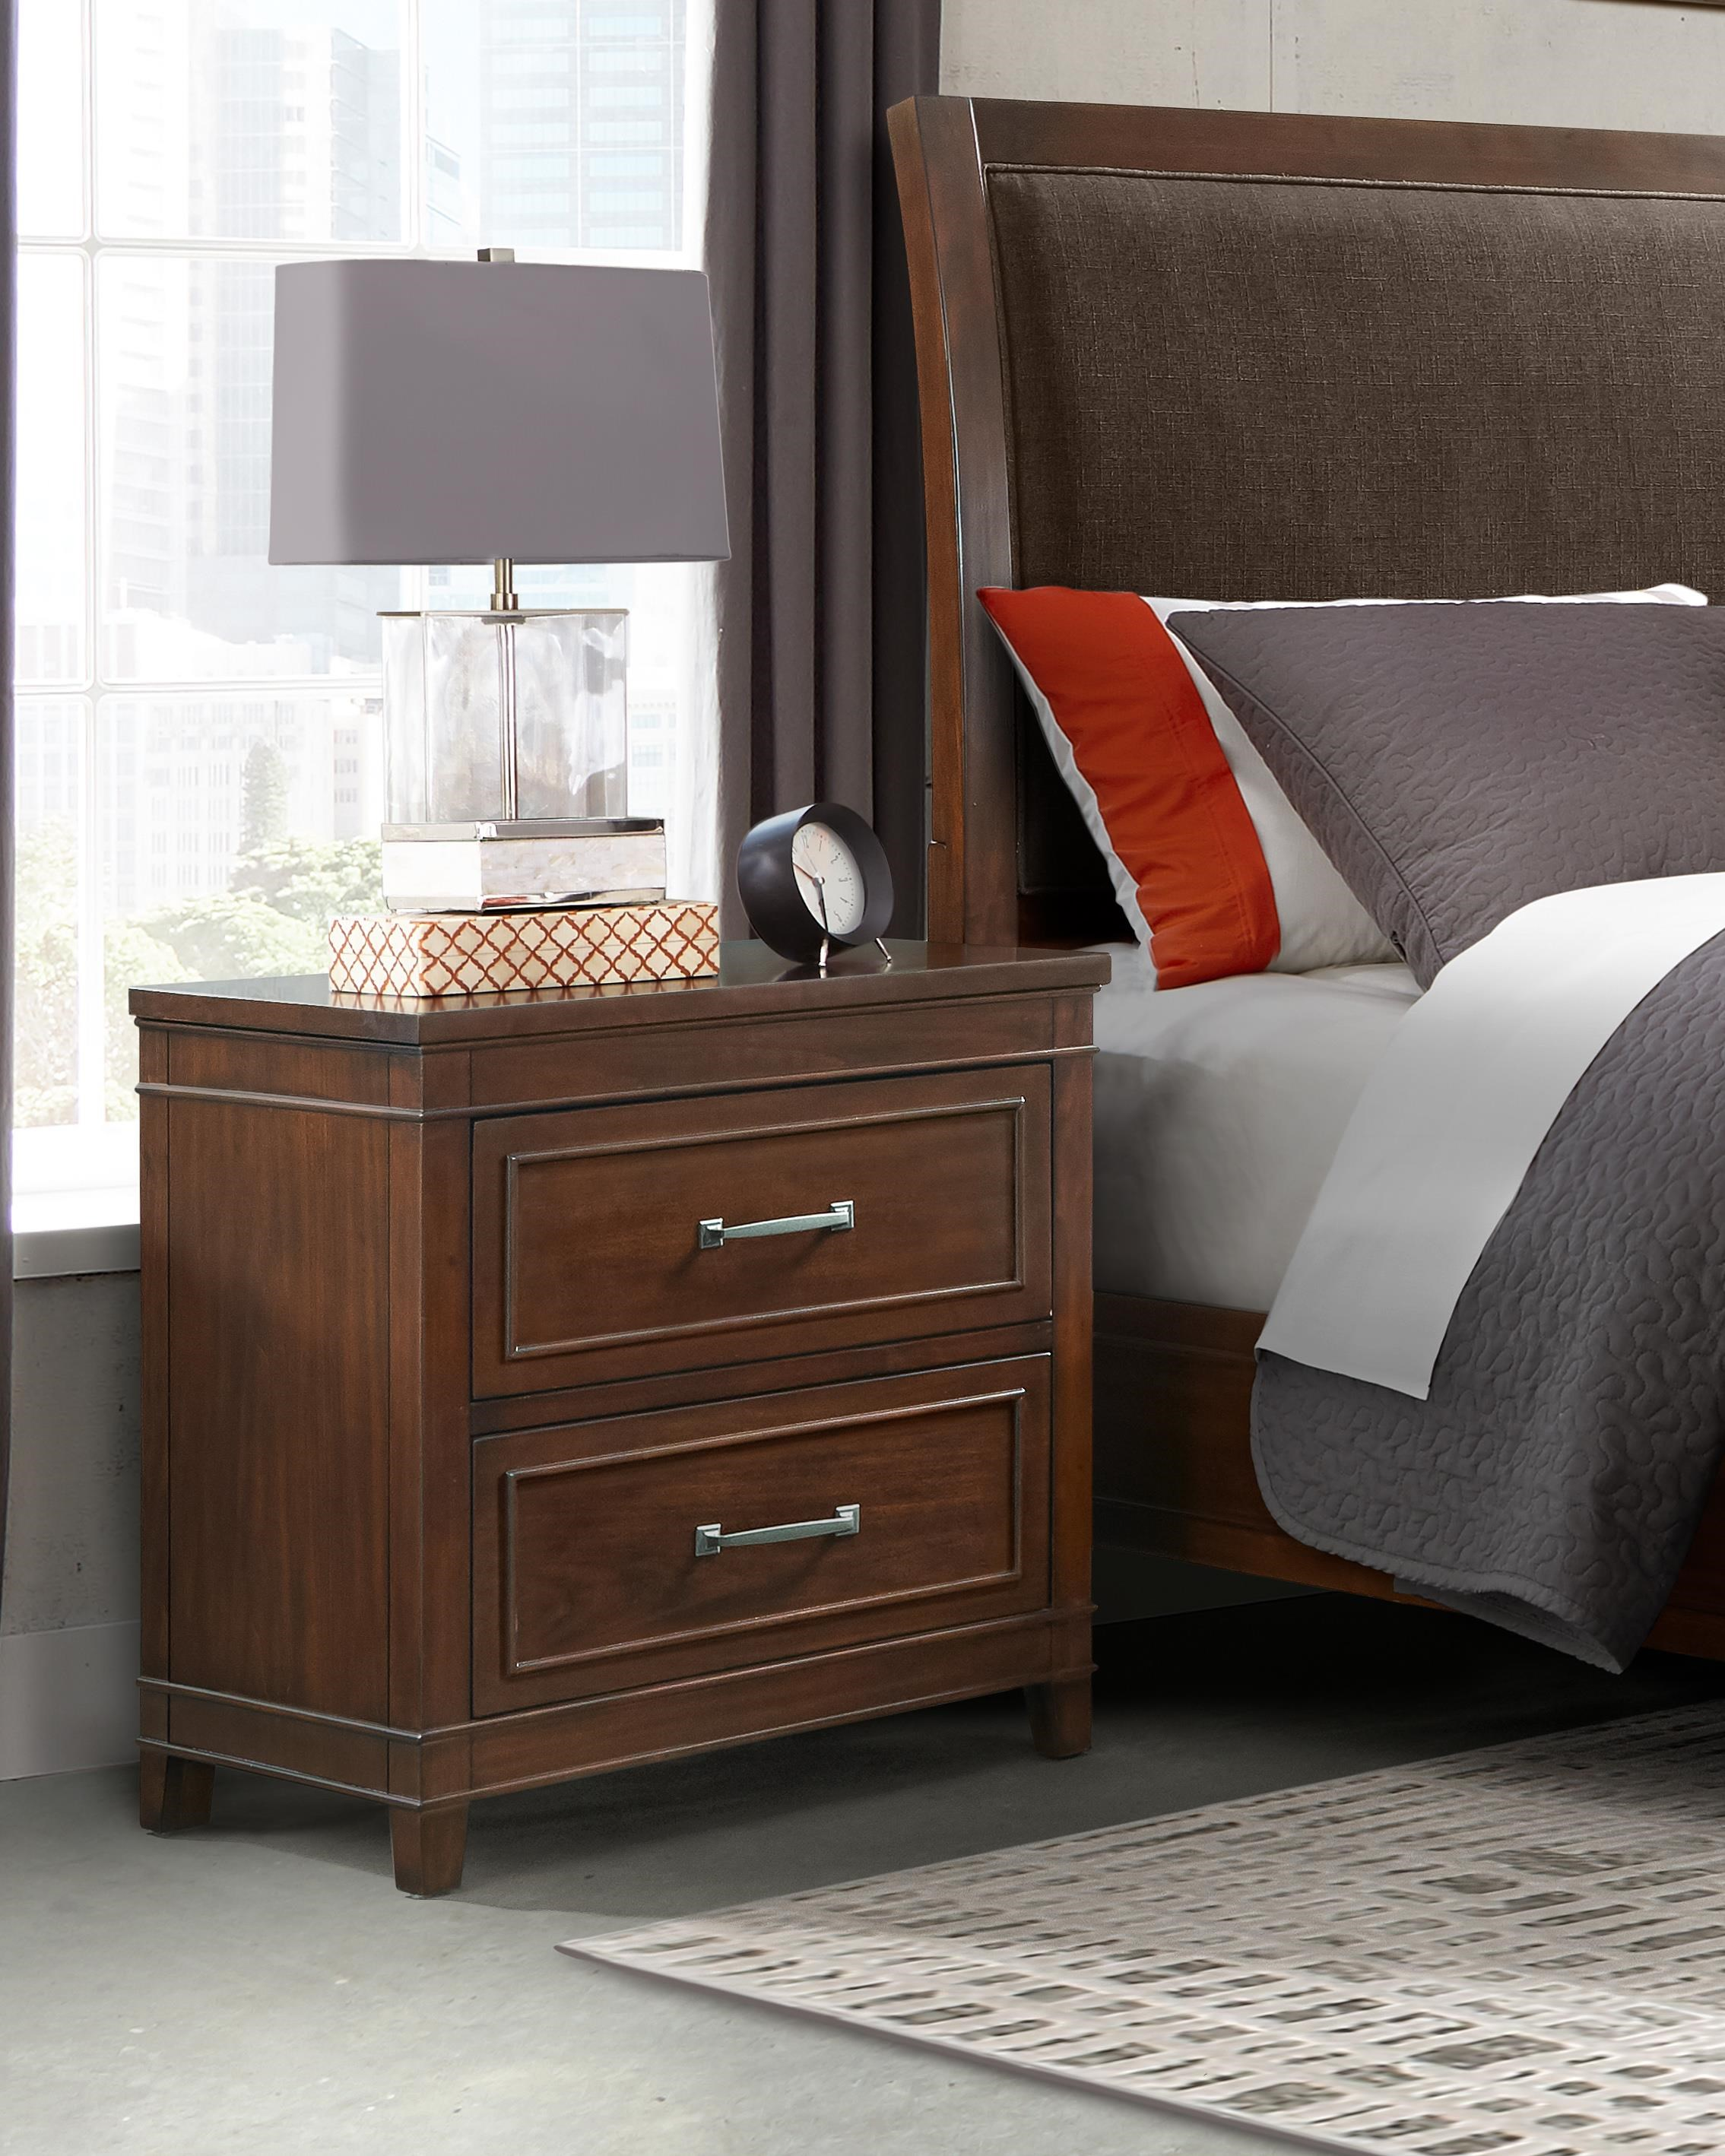 LaJolla Nightstand by Martin Svensson Home at Darvin Furniture